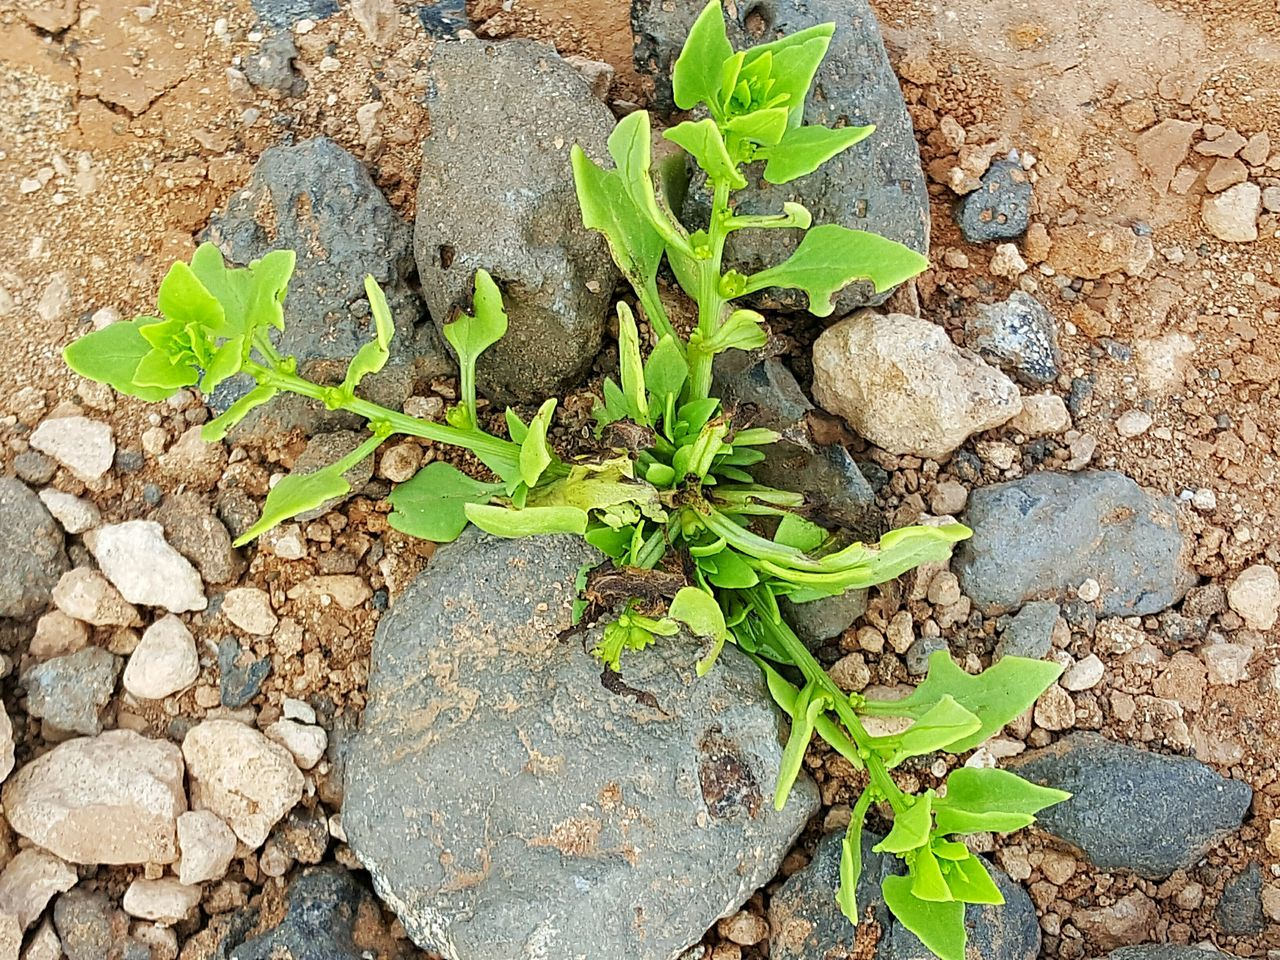 Nature Plant Plant Photography Little Plant Plant And Stone Stony Gravelly Powerful Powerful Nature Vital Gutsy Forceful Nature Forceful